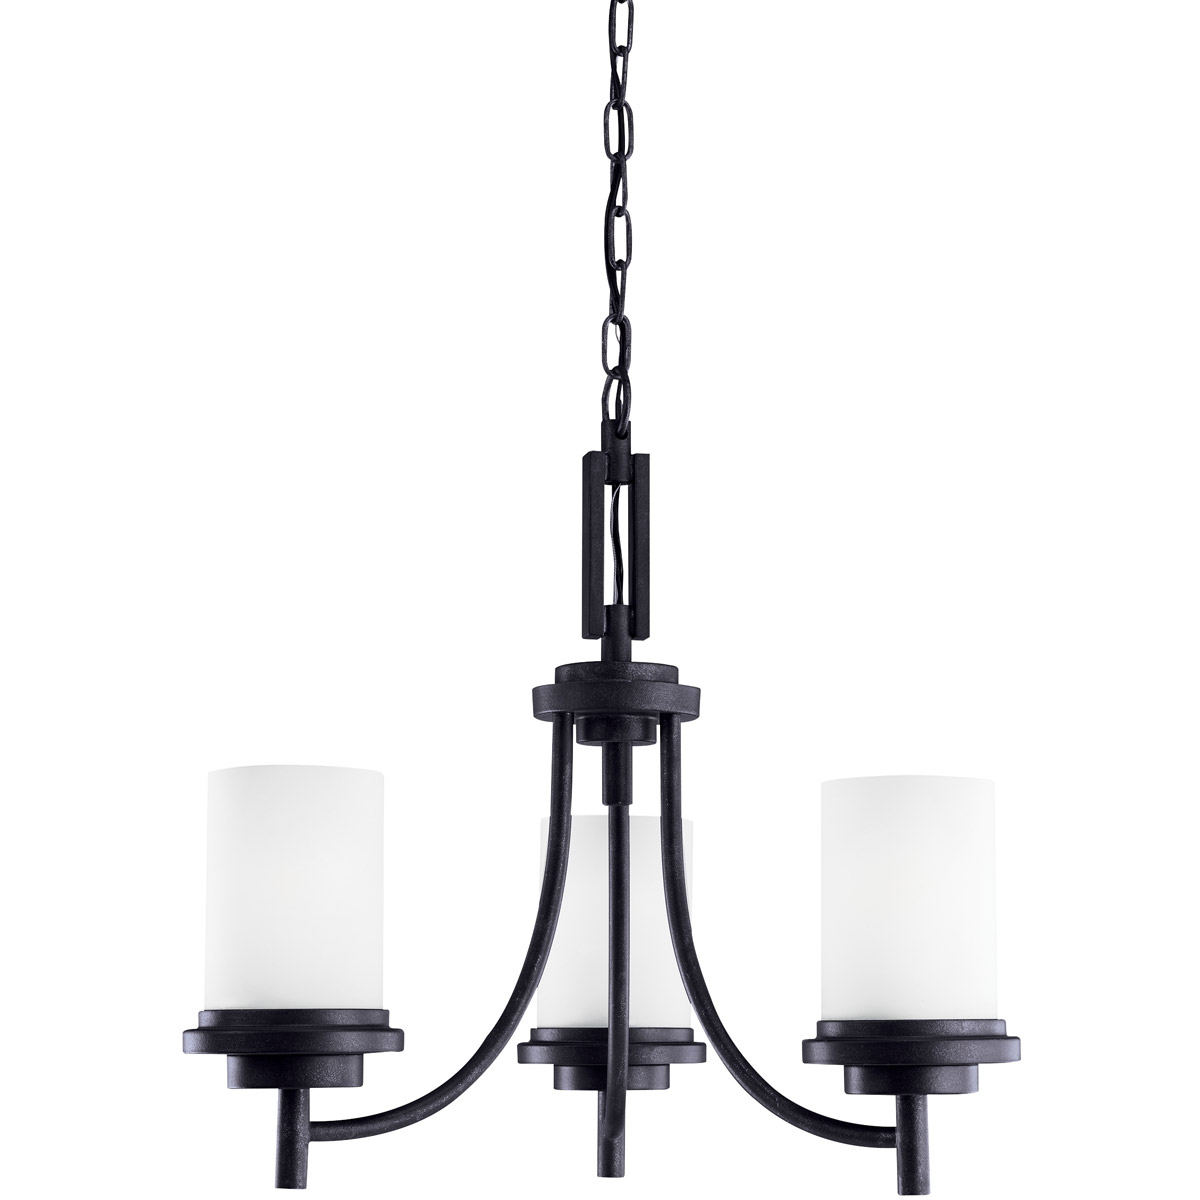 Sea Gull Lighting Winnetka 3 Light Chandelier in Blacksmith 31660-839